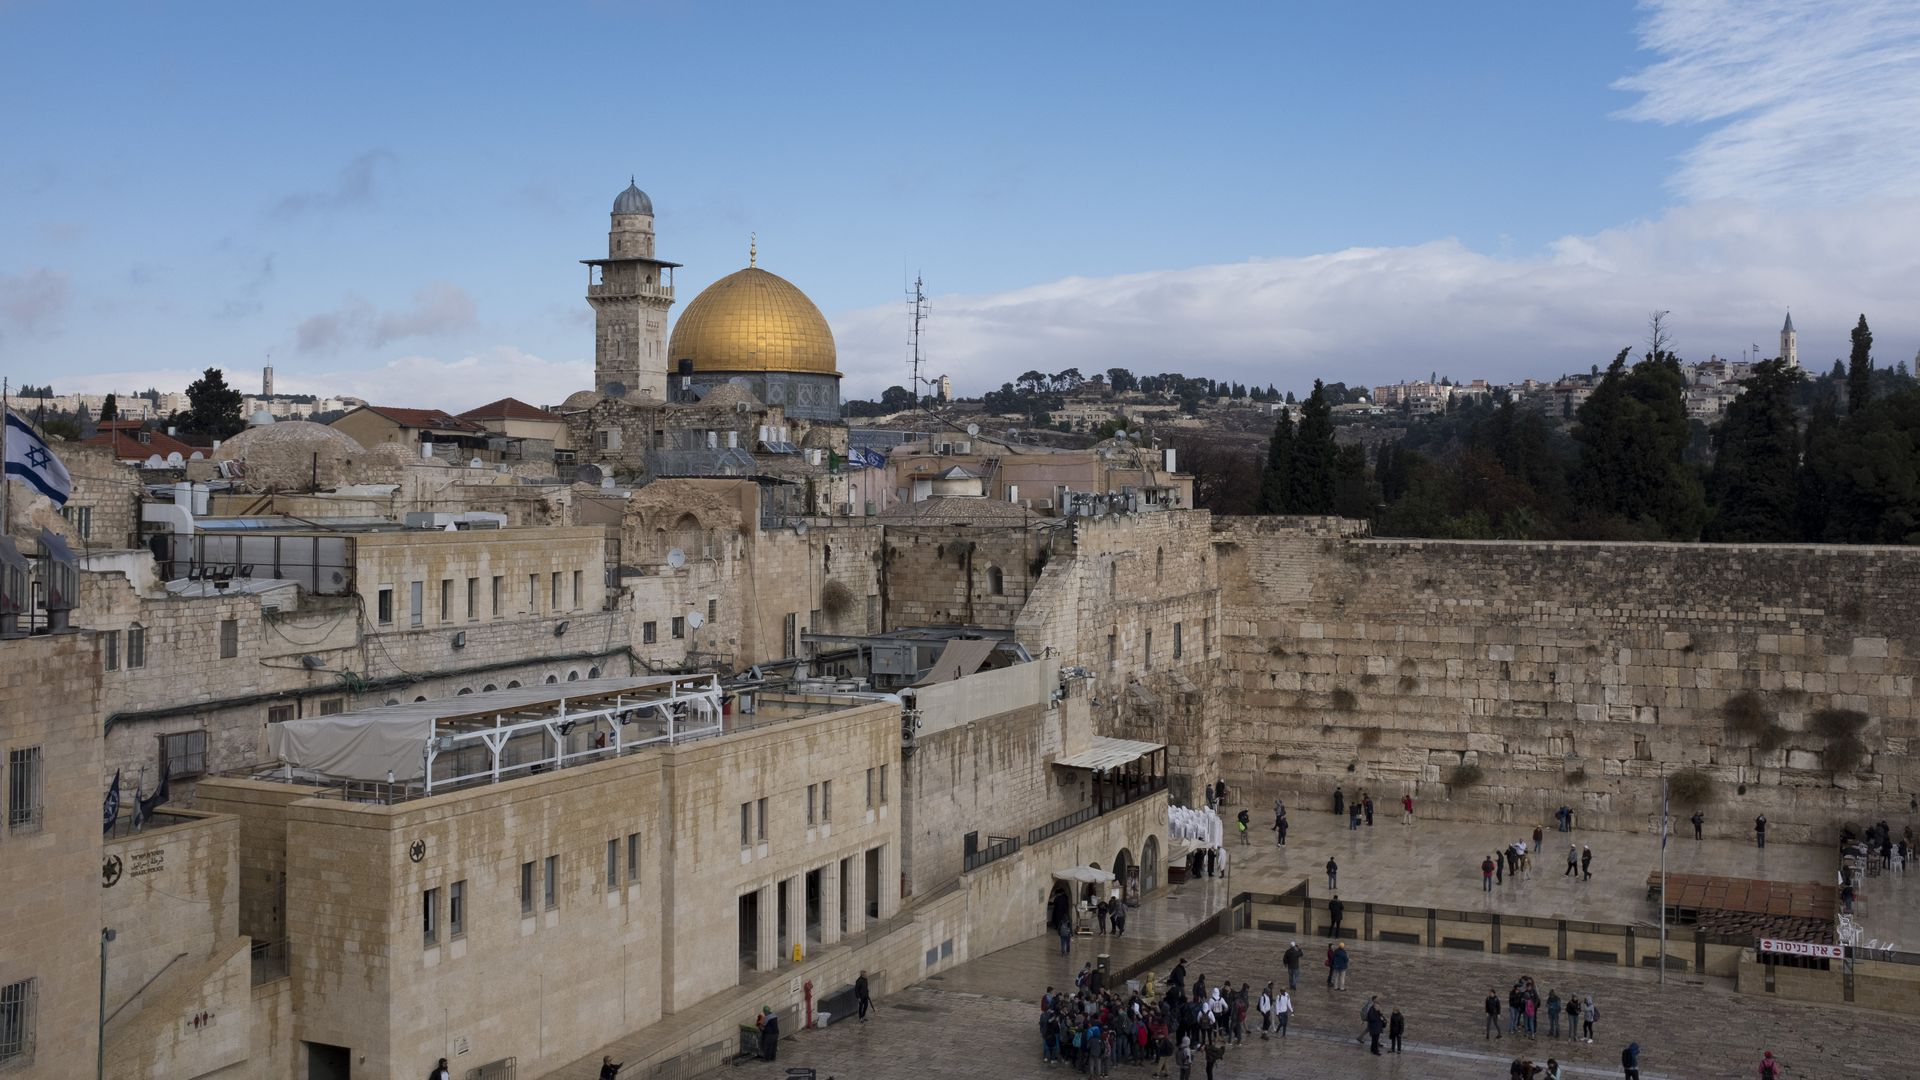 Dome of the Rock and the Western Wall in Jerusalem